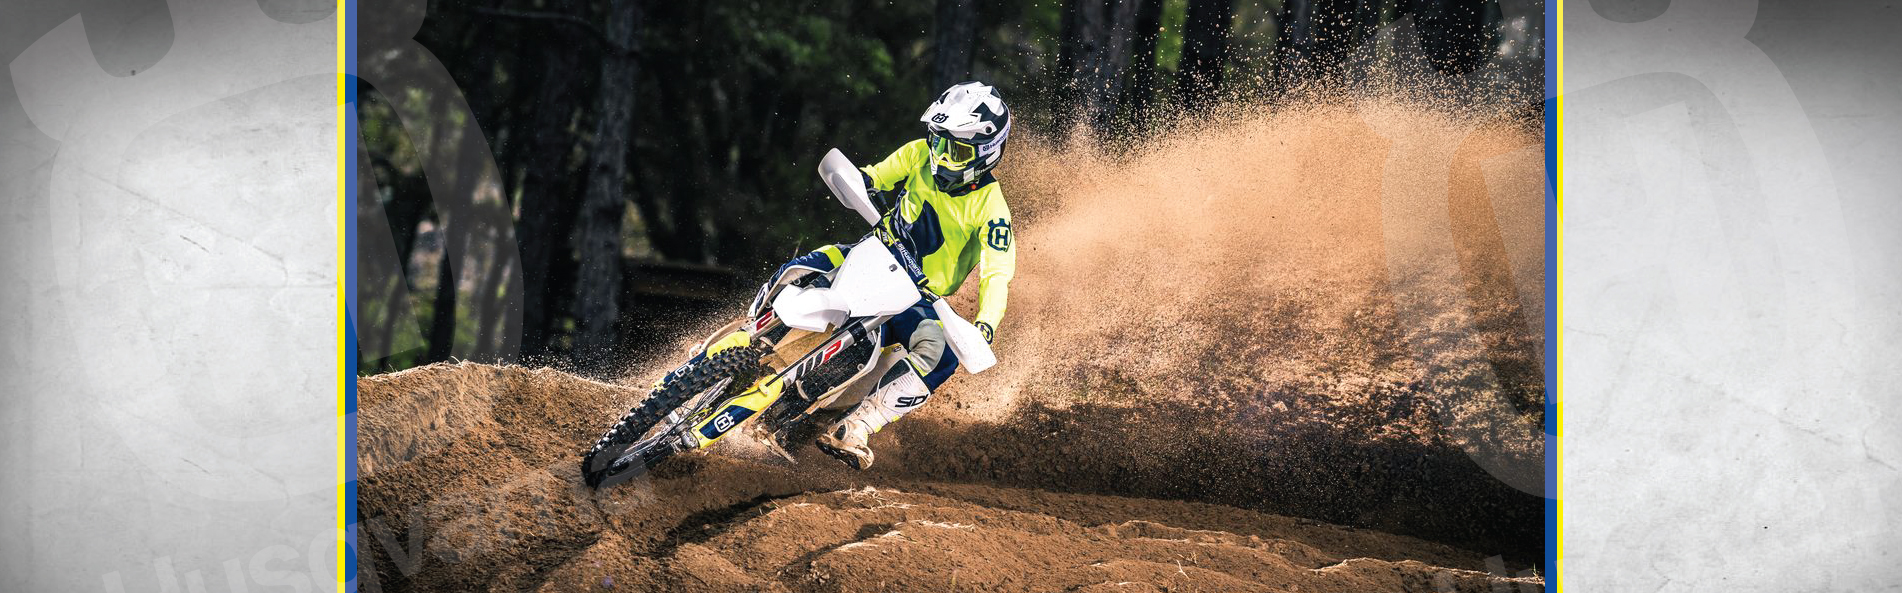 DK Off Road - Kawasaki and Husqvarna Motorcross and Enduro